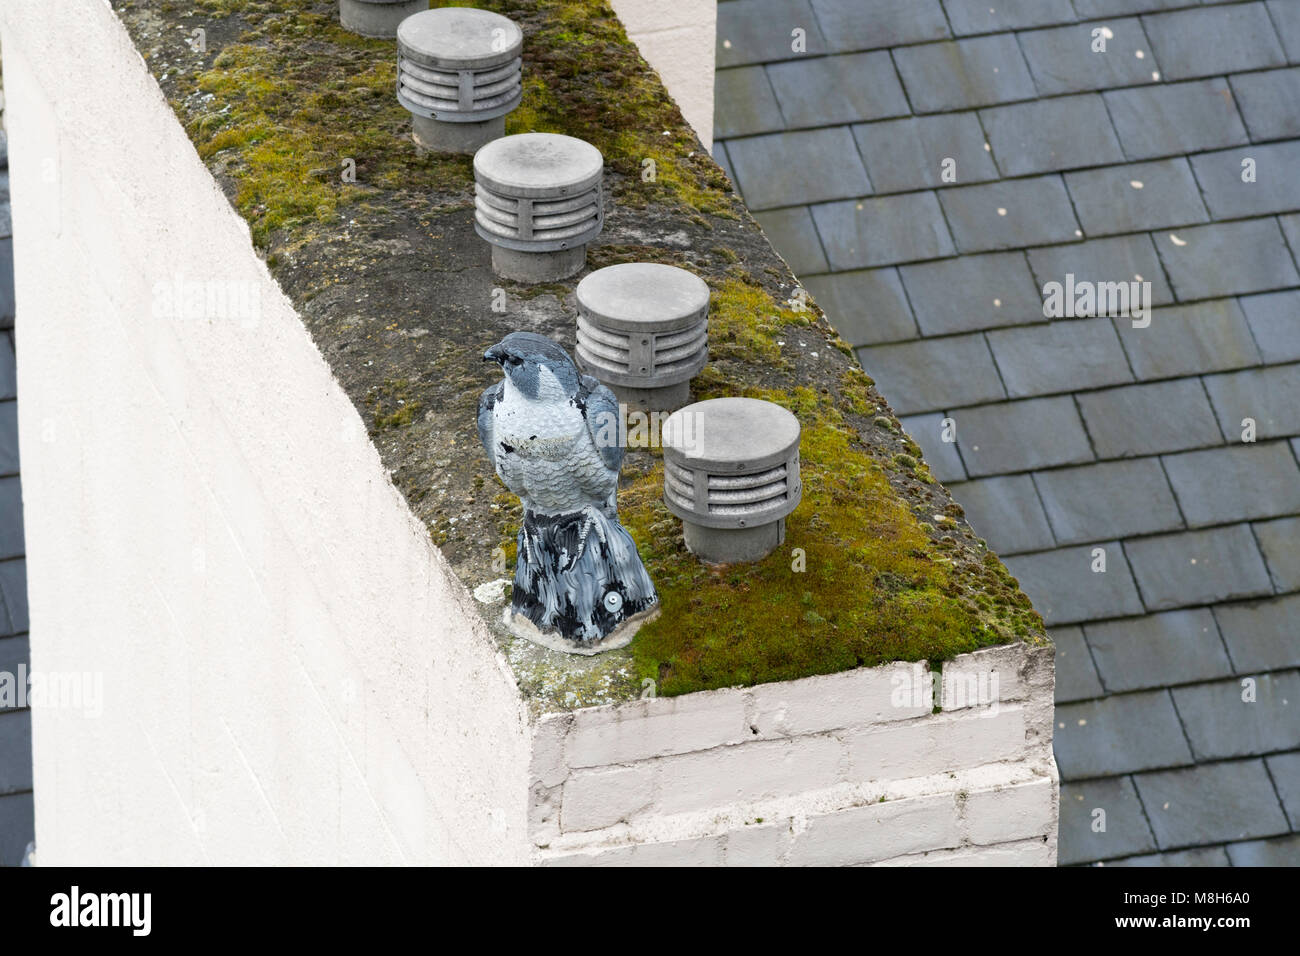 Decoy replica bird of prey on top of building as a pigeon deterrent, north east England, UK - Stock Image